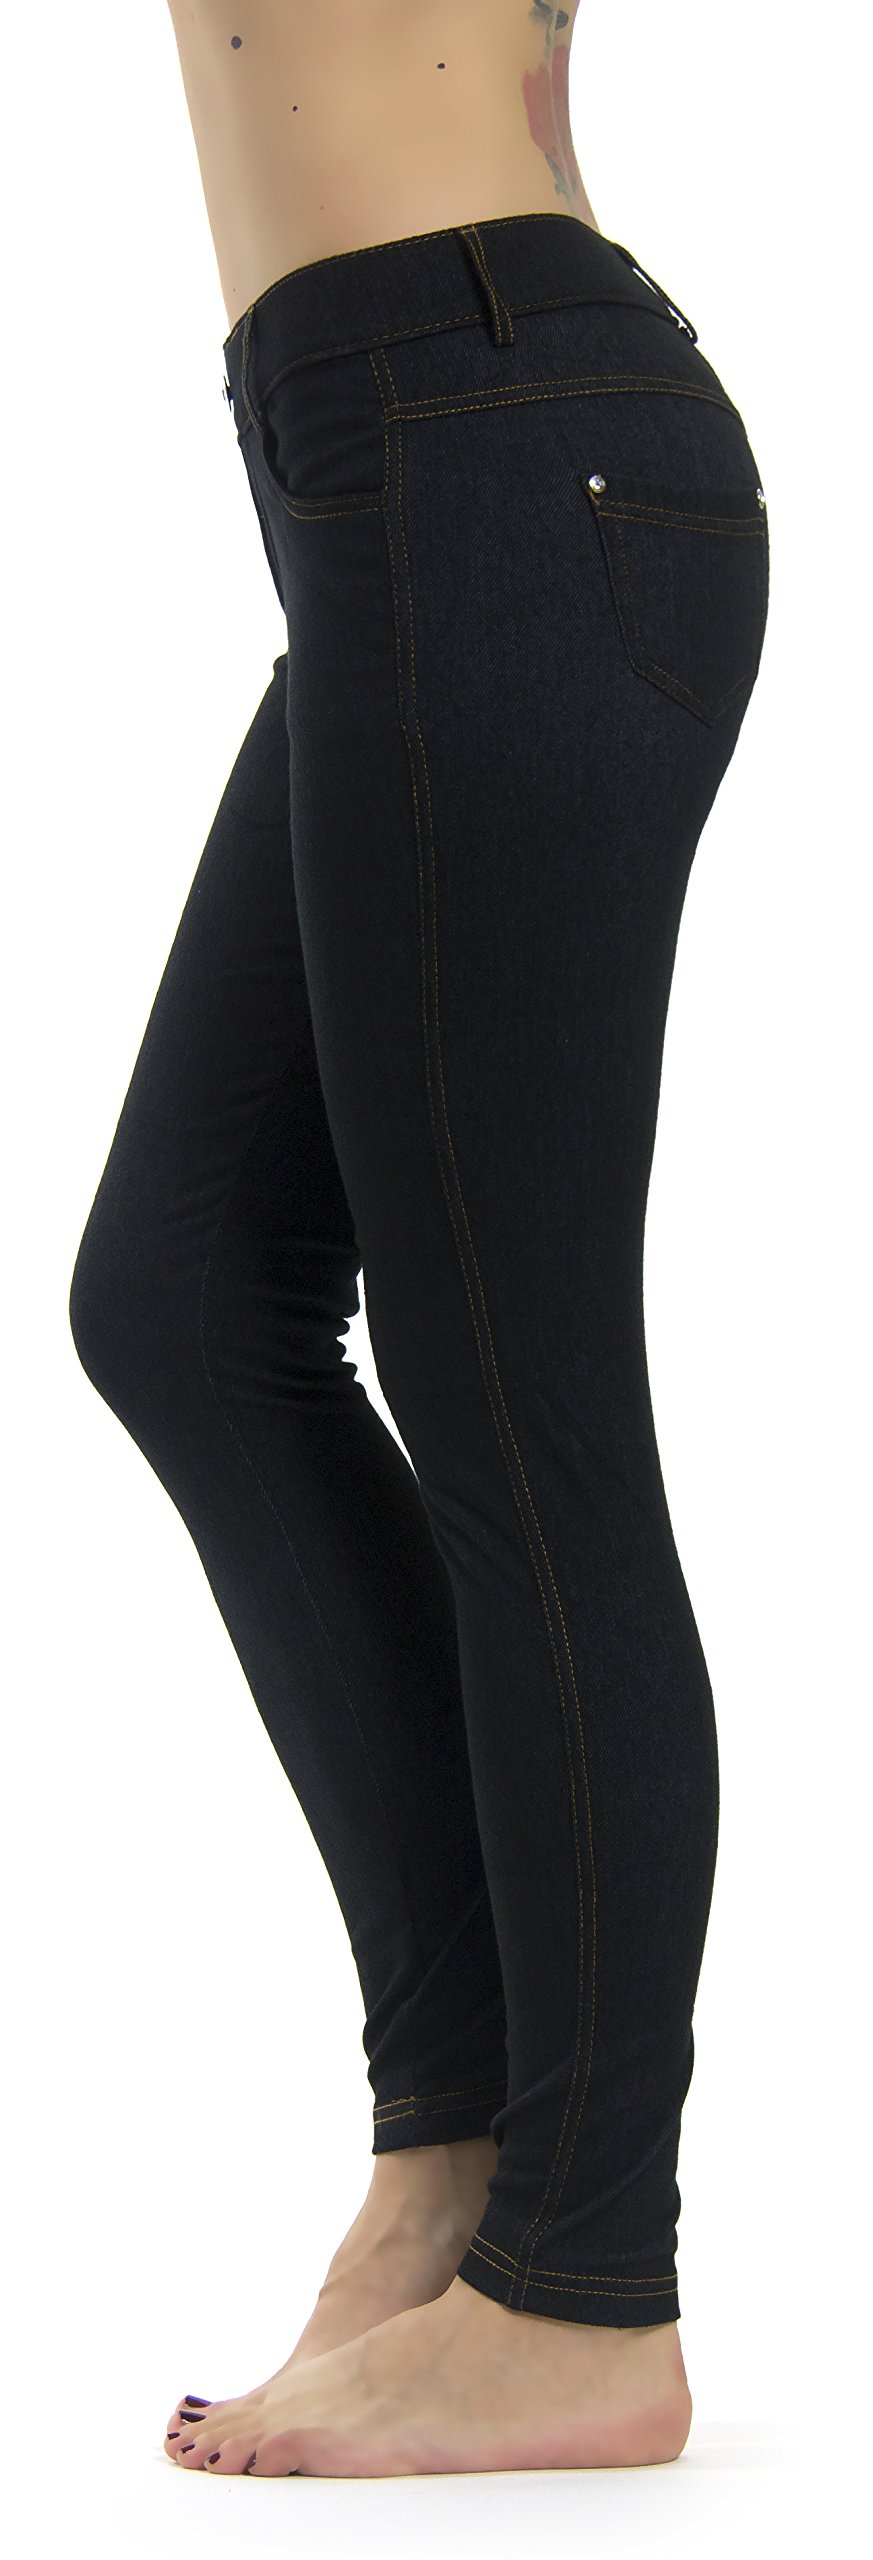 Prolific Health Women's Jean Look Jeggings Tights Slimming Many Colors Spandex Leggings Pants S-XXXL (Large/X-Large, Black Denim) by Prolific Health (Image #1)